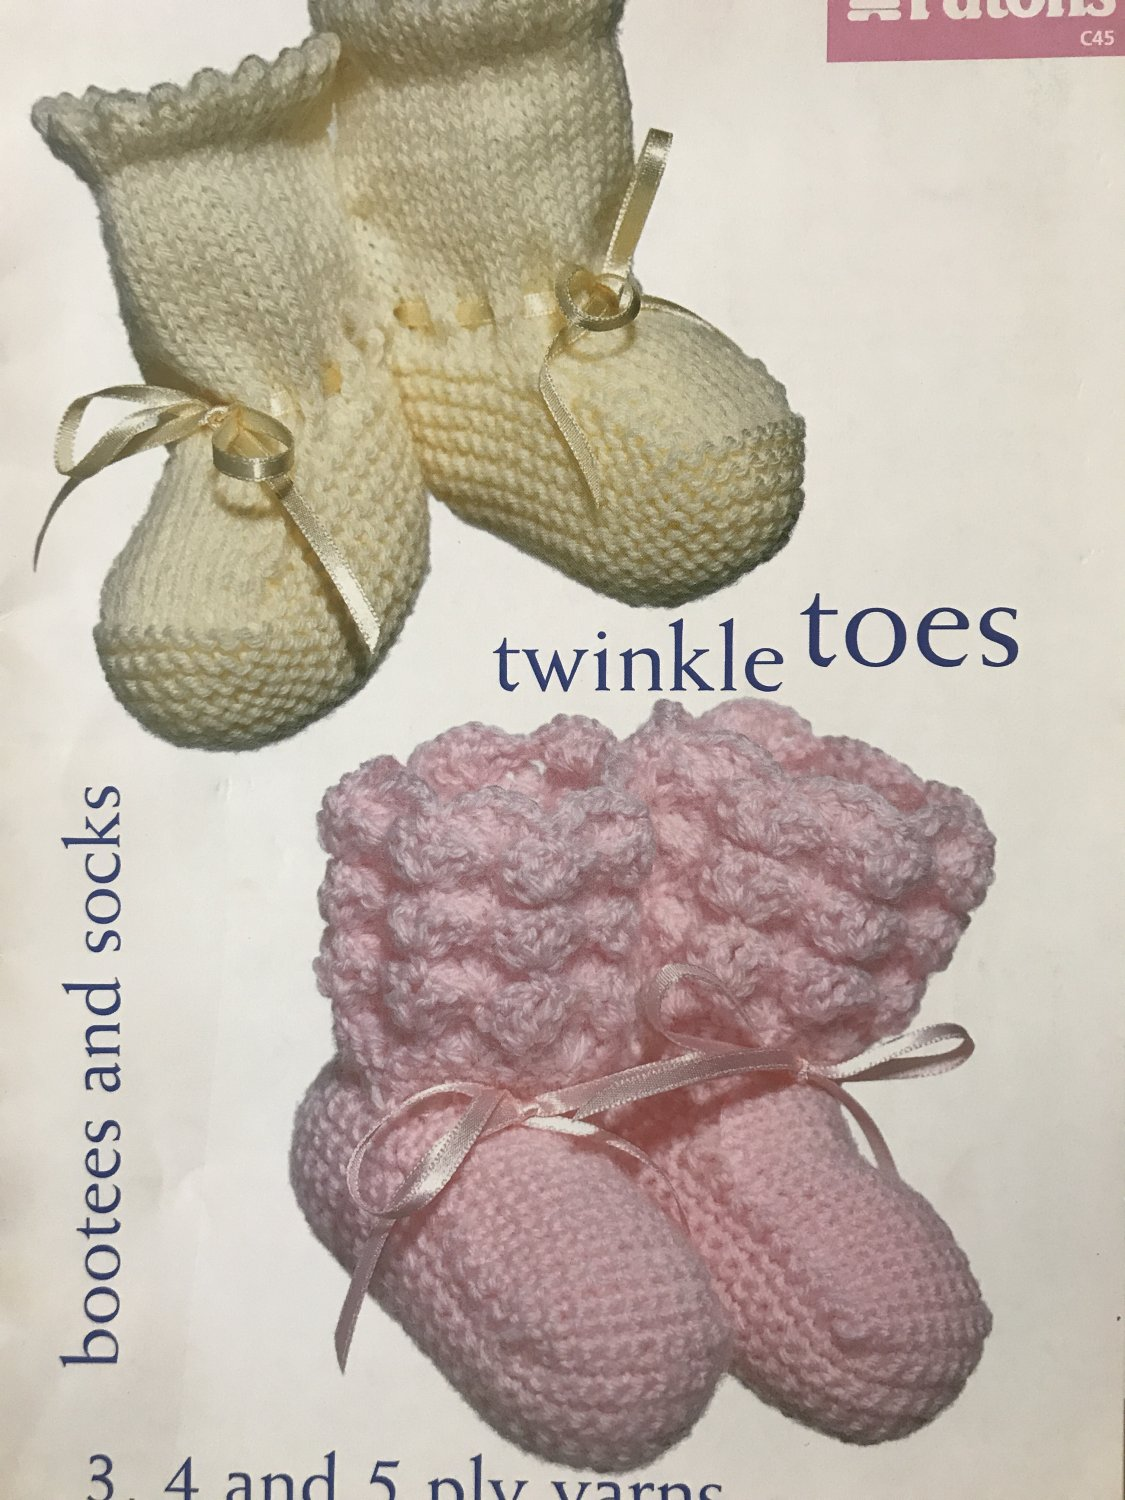 Bootees Booties and Socks Patons Twinkle Toes knitting pattern 23 projects including Mary Janes